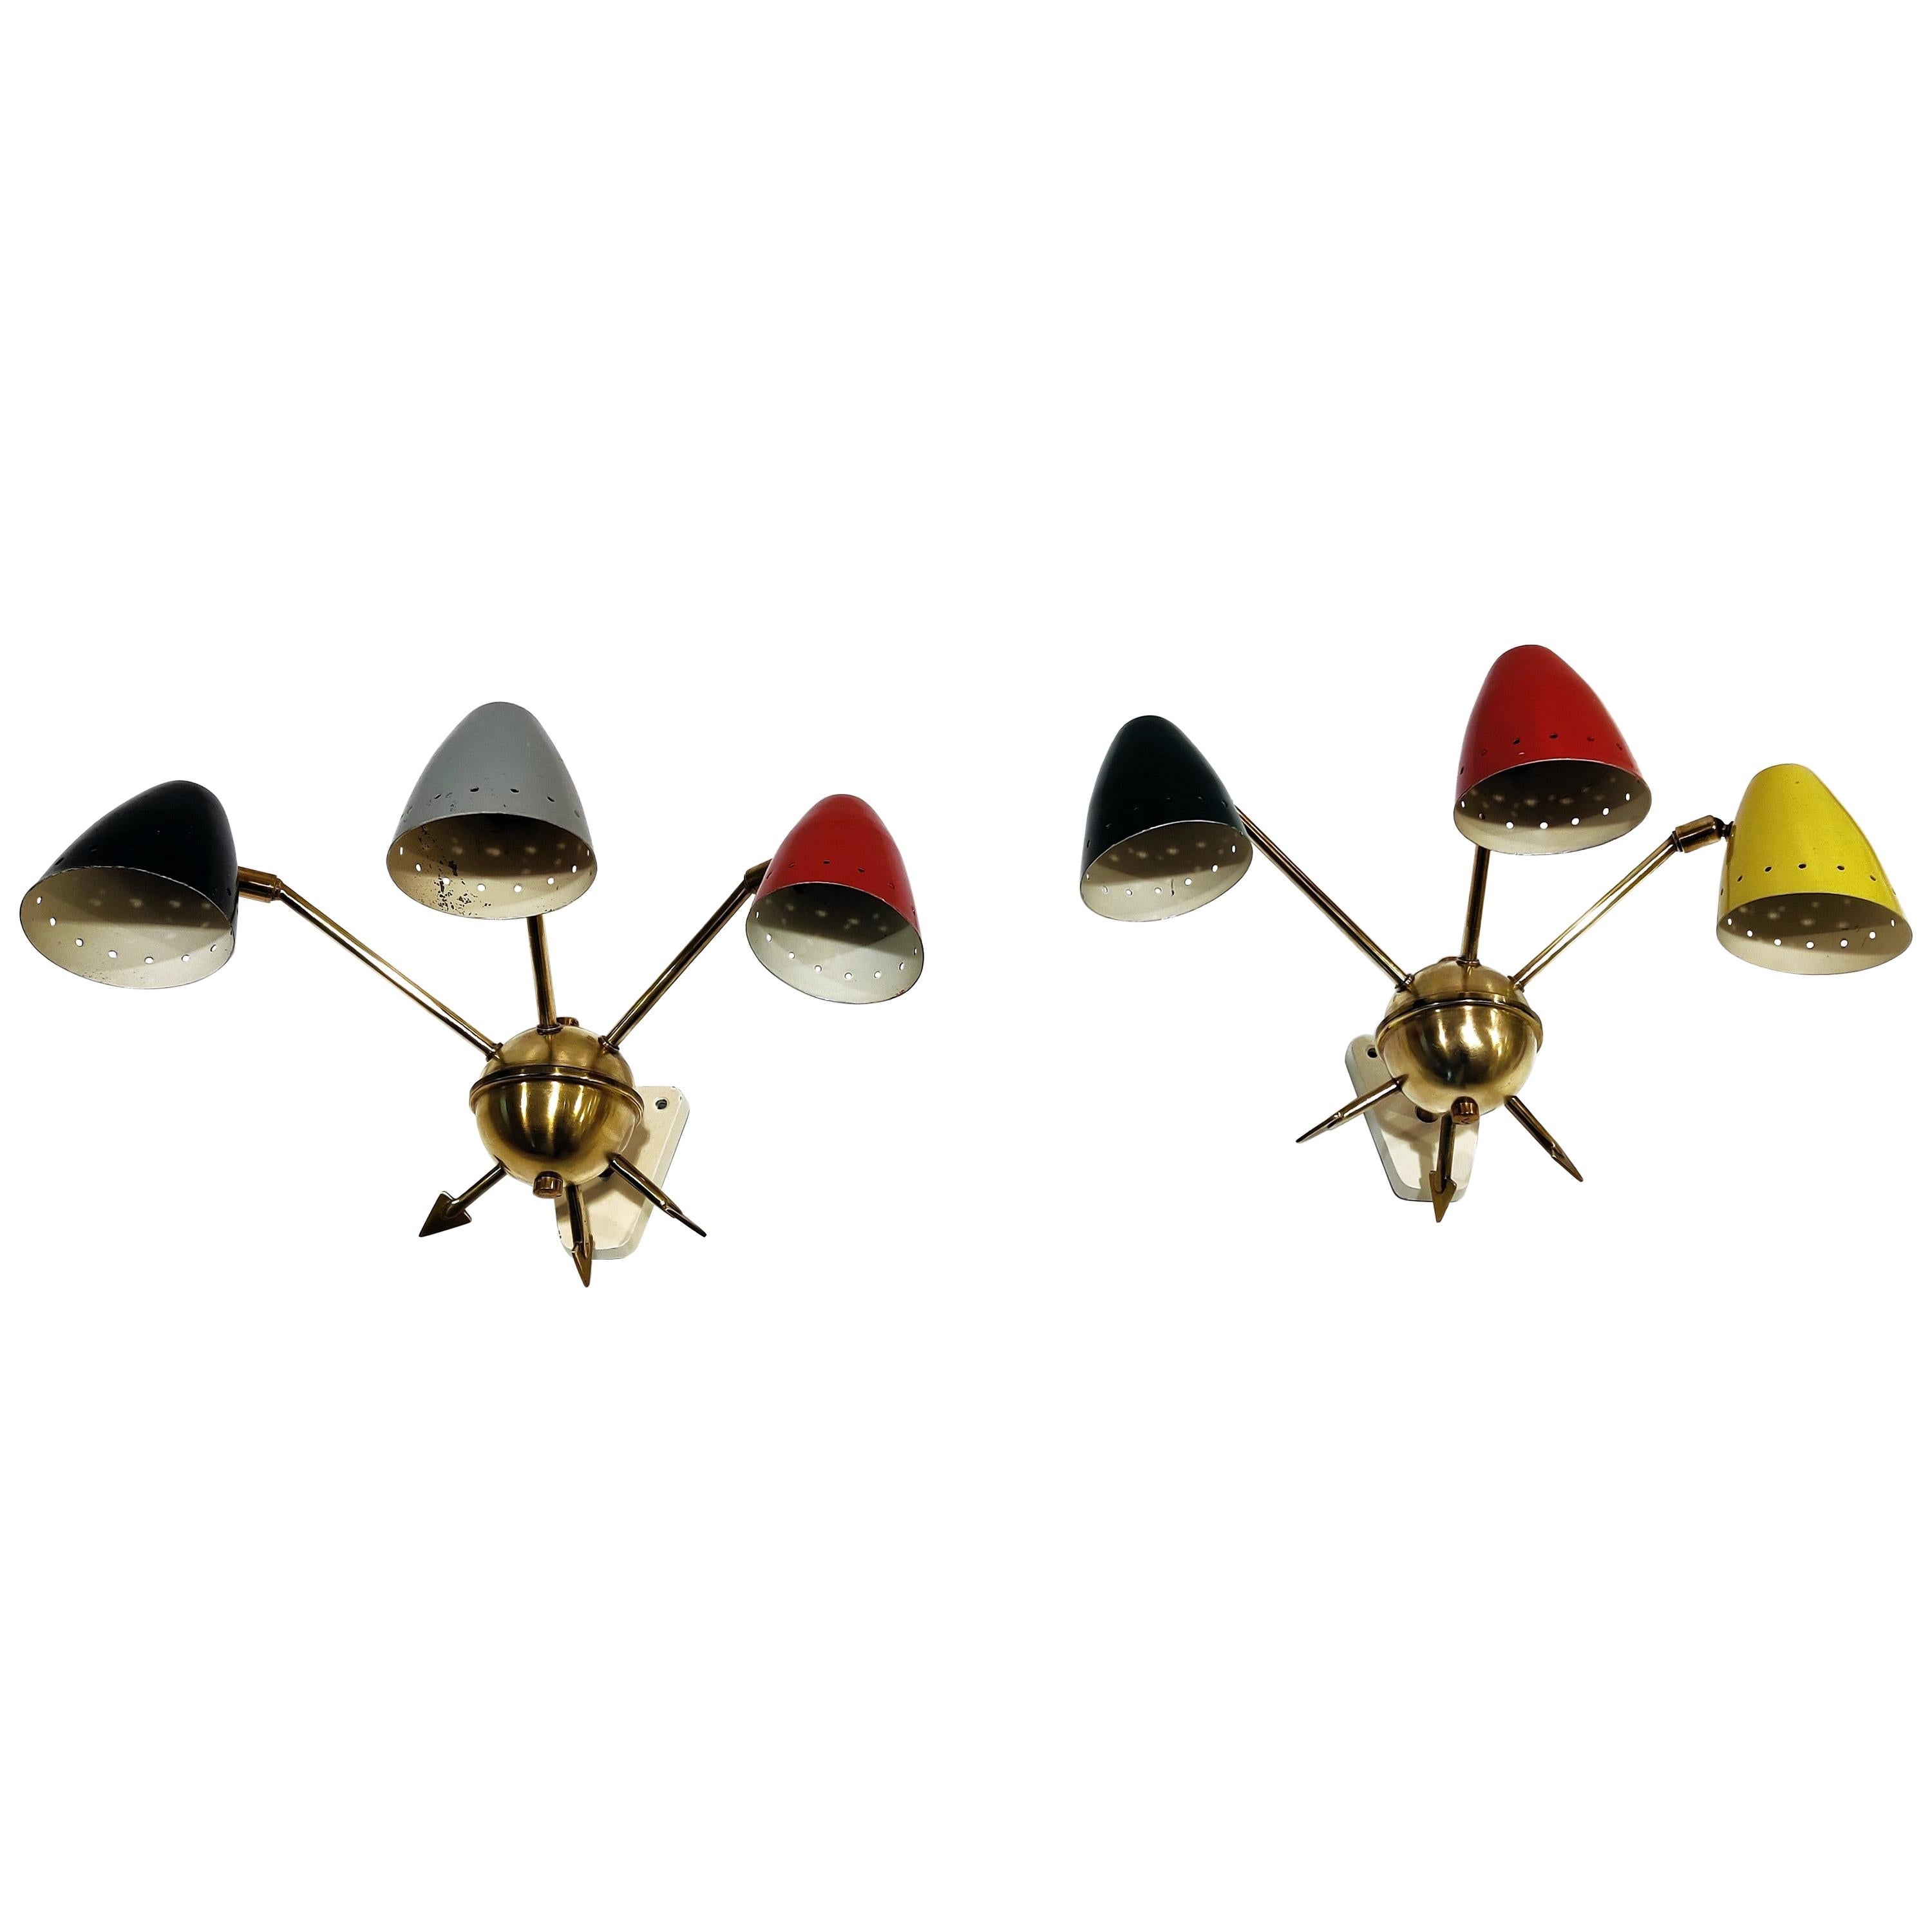 Pair of Vintage Italian Colored Wall Lights, 1950s